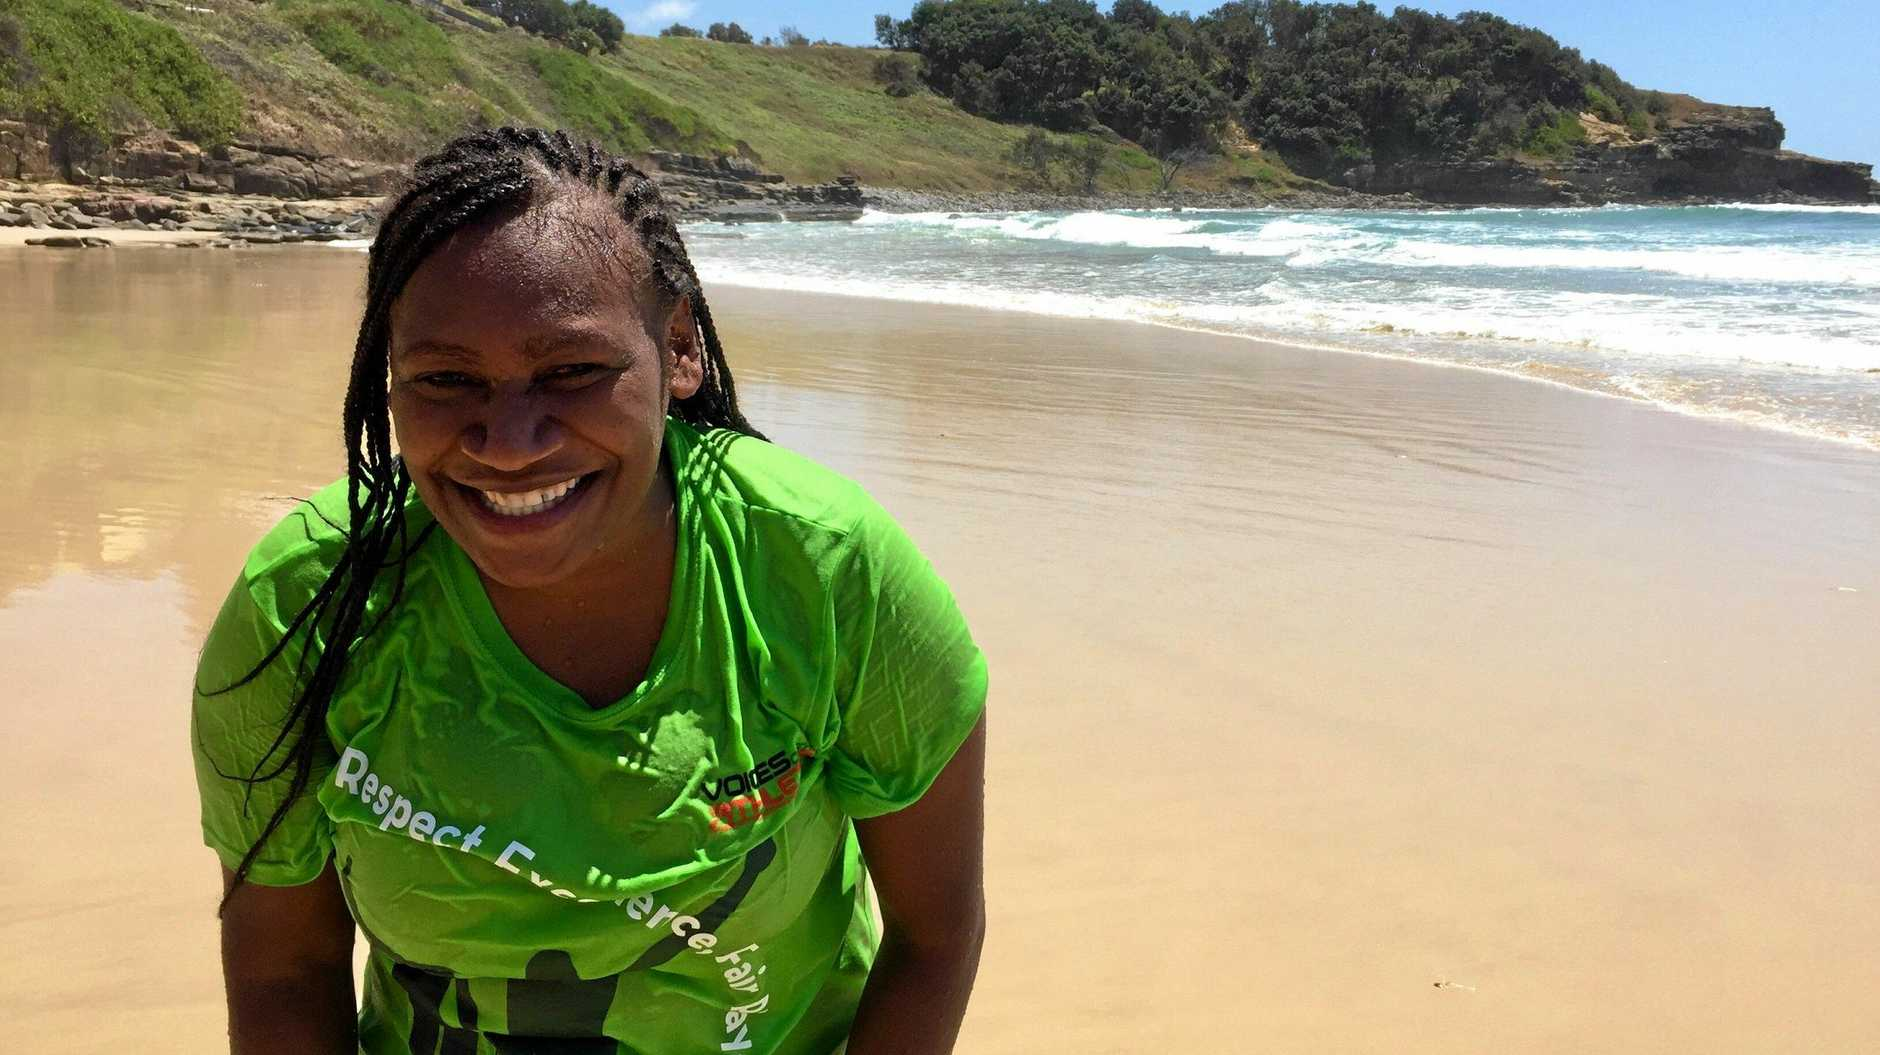 Mary Sio, who is from Vanuatu and has lived in Maclean for five months, participated in the Maclean TAFE NSW Beach Safety Awareness Program at Main Beach, Yamba on Wednesday, 20th February, 2019.